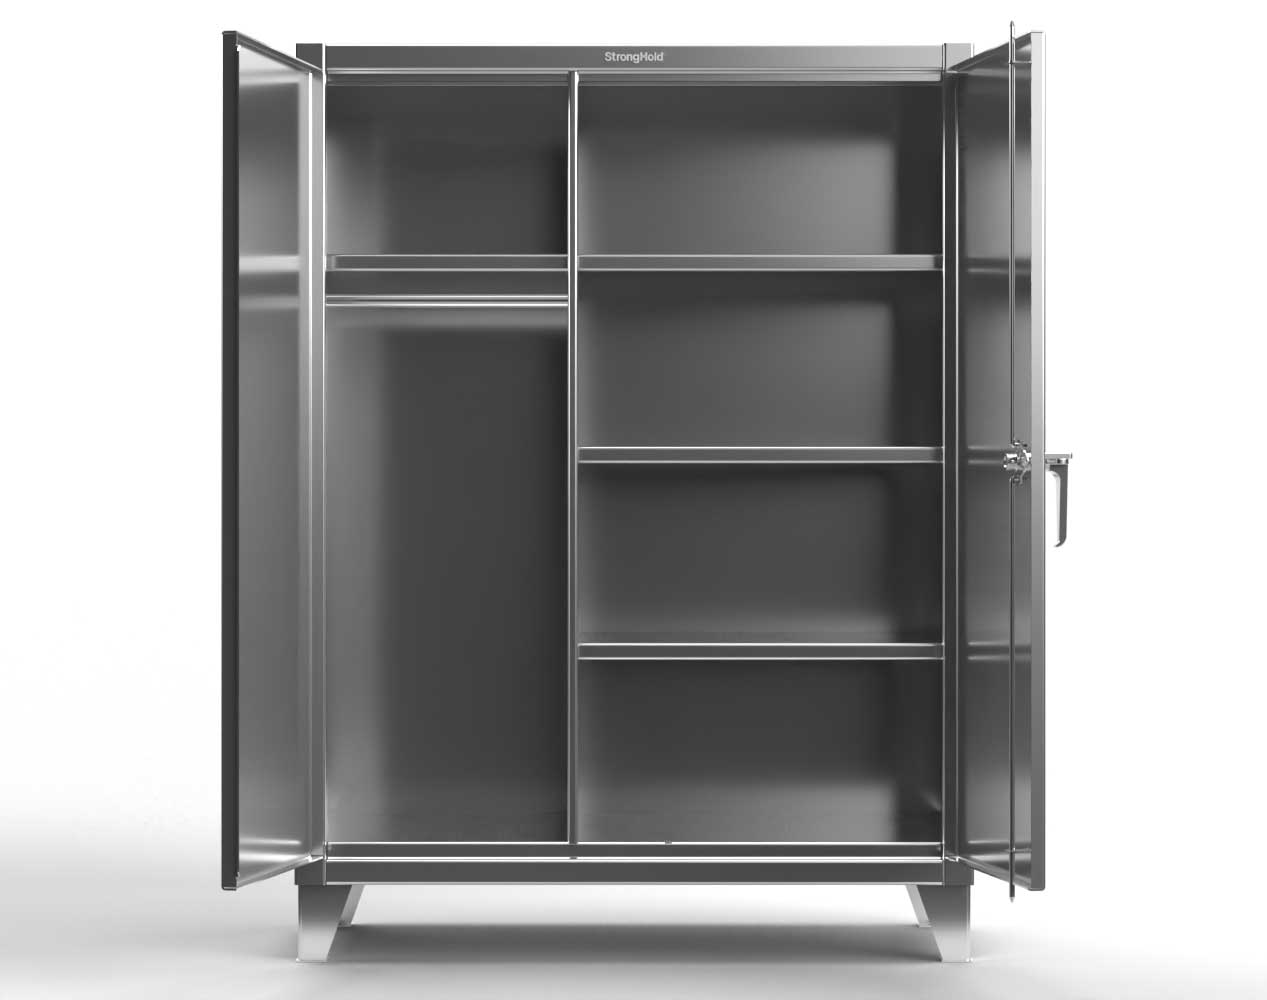 Extra Heavy Duty 12 GA Stainless Steel Wardrobe Cabinet with 4 Shelves – 60 In. W x 24 In. D x 66 In. H